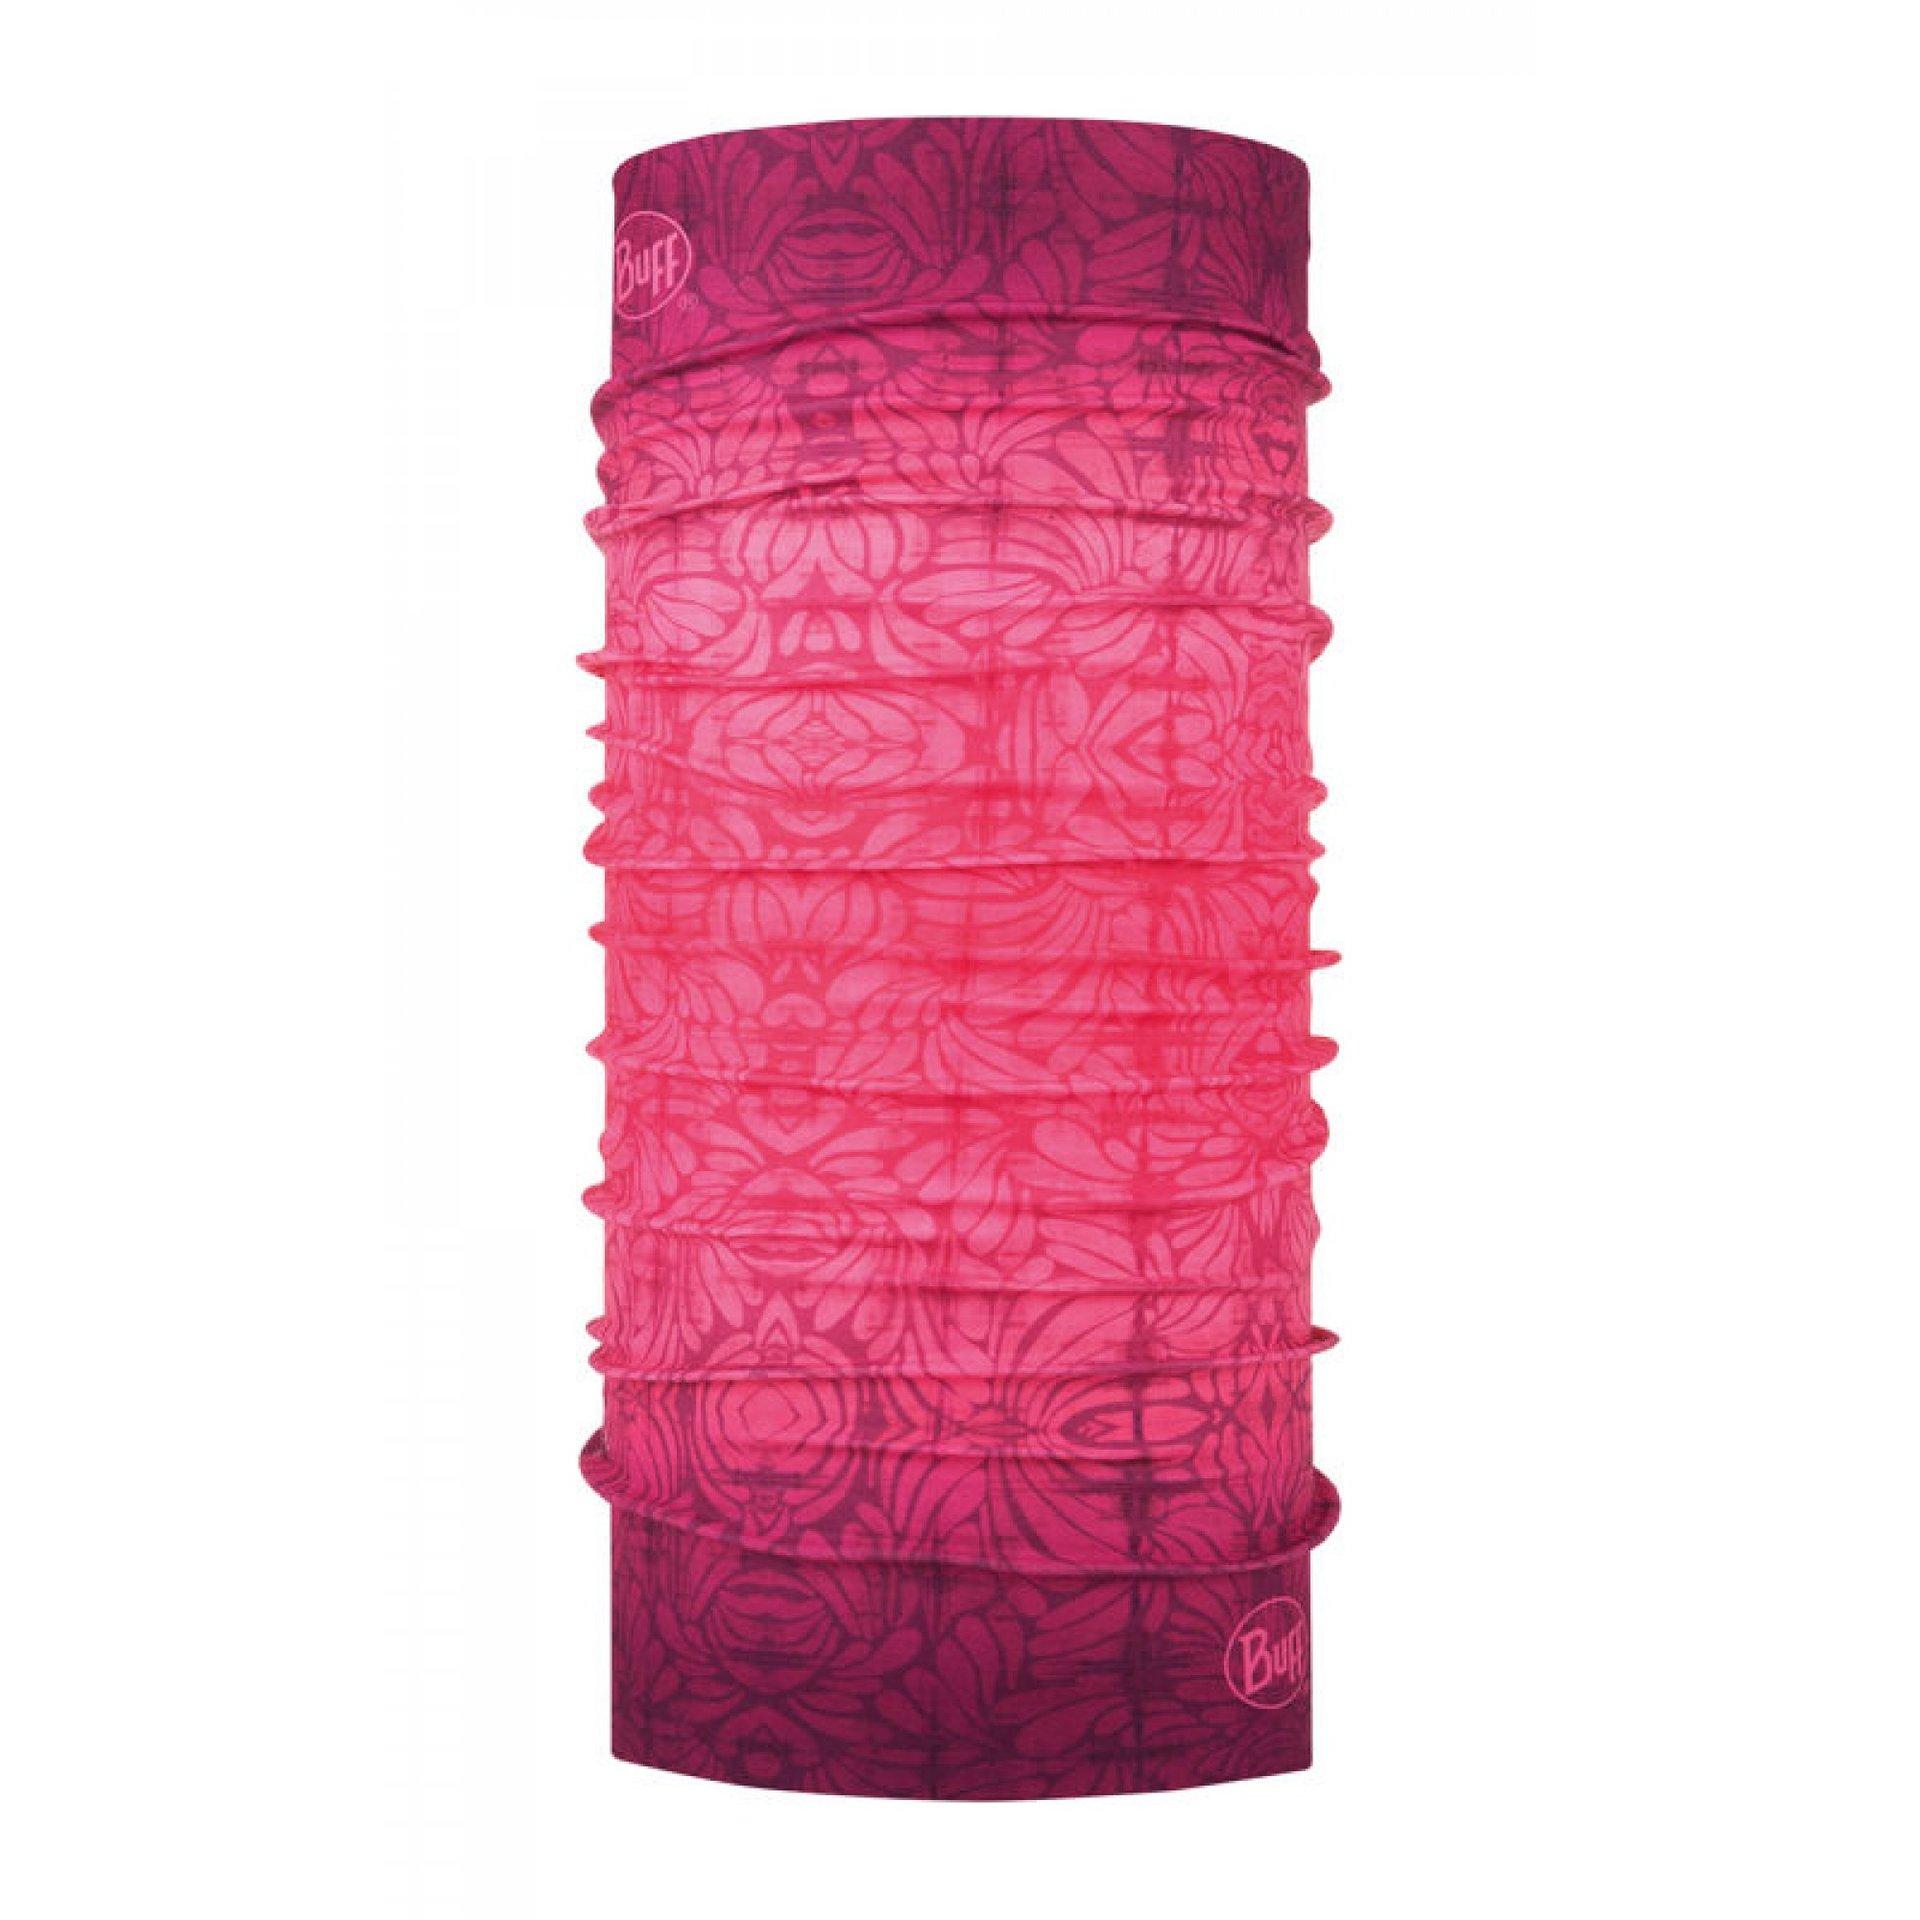 ORIGINAL US BORONIA PINK BUFF